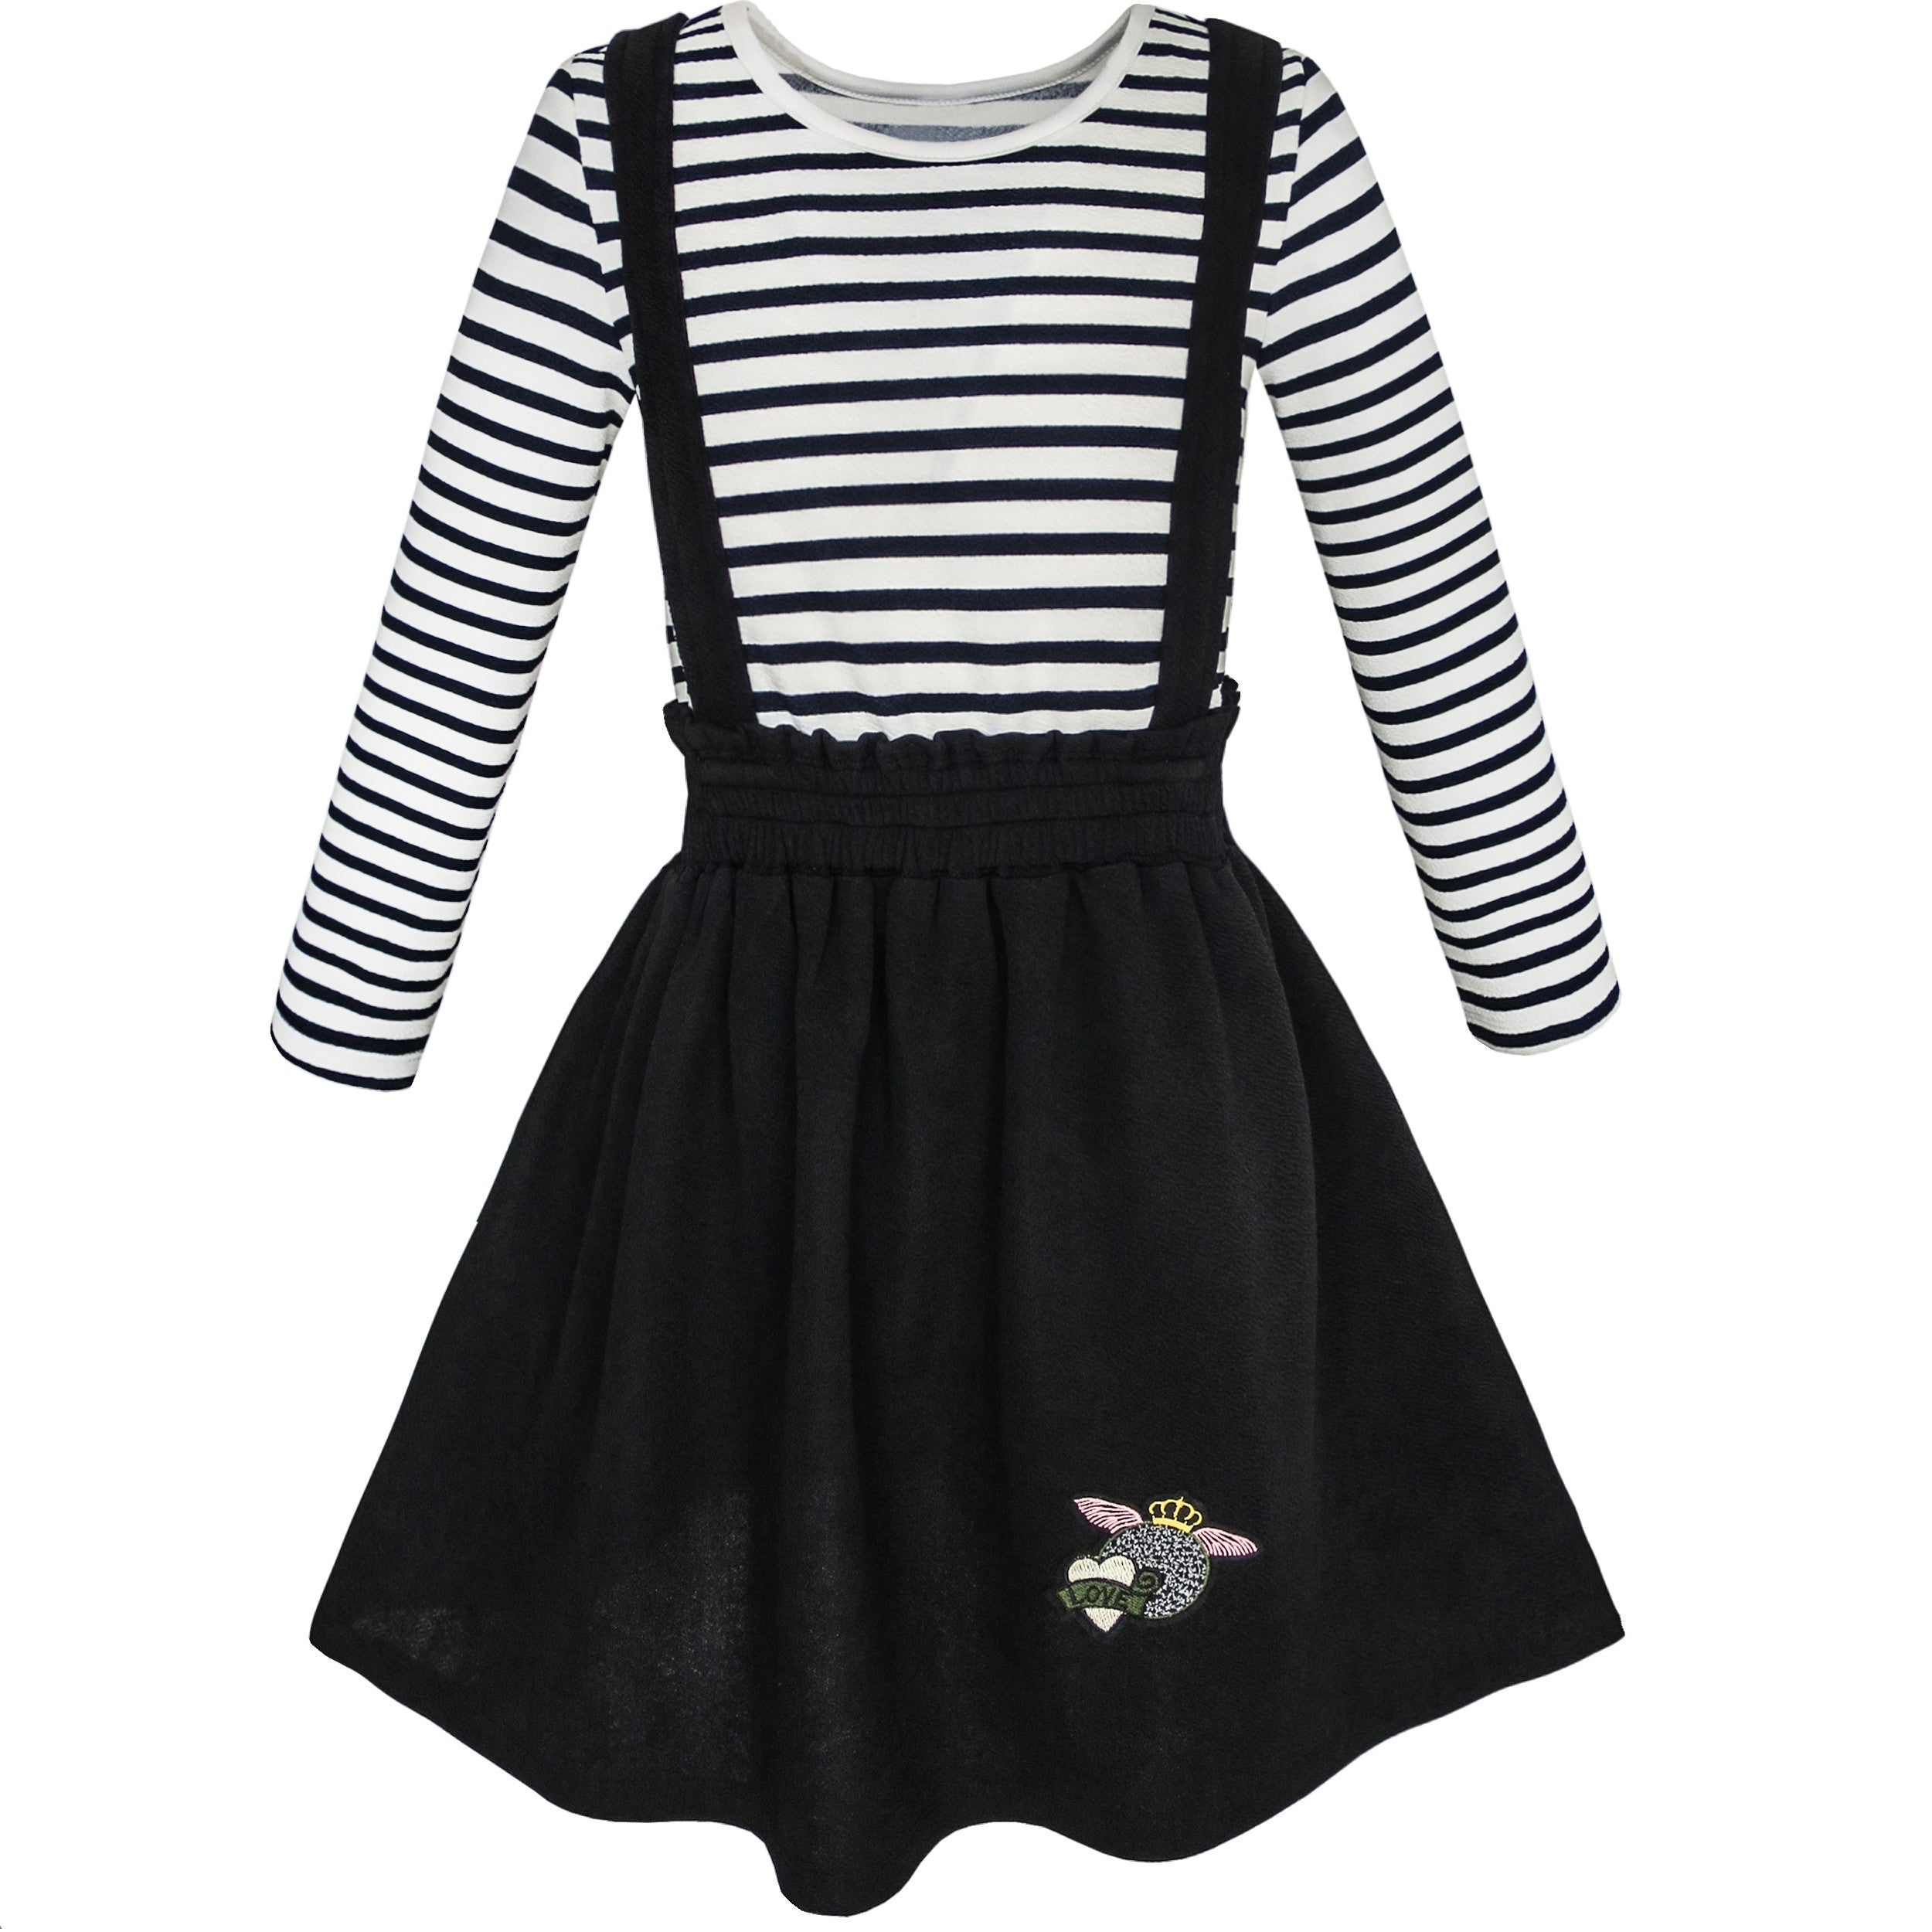 Girls dresses with striped pattern sunny fashion 2 pieces set girls dress t shirt suspender skirt school size 4 12 years mightylinksfo